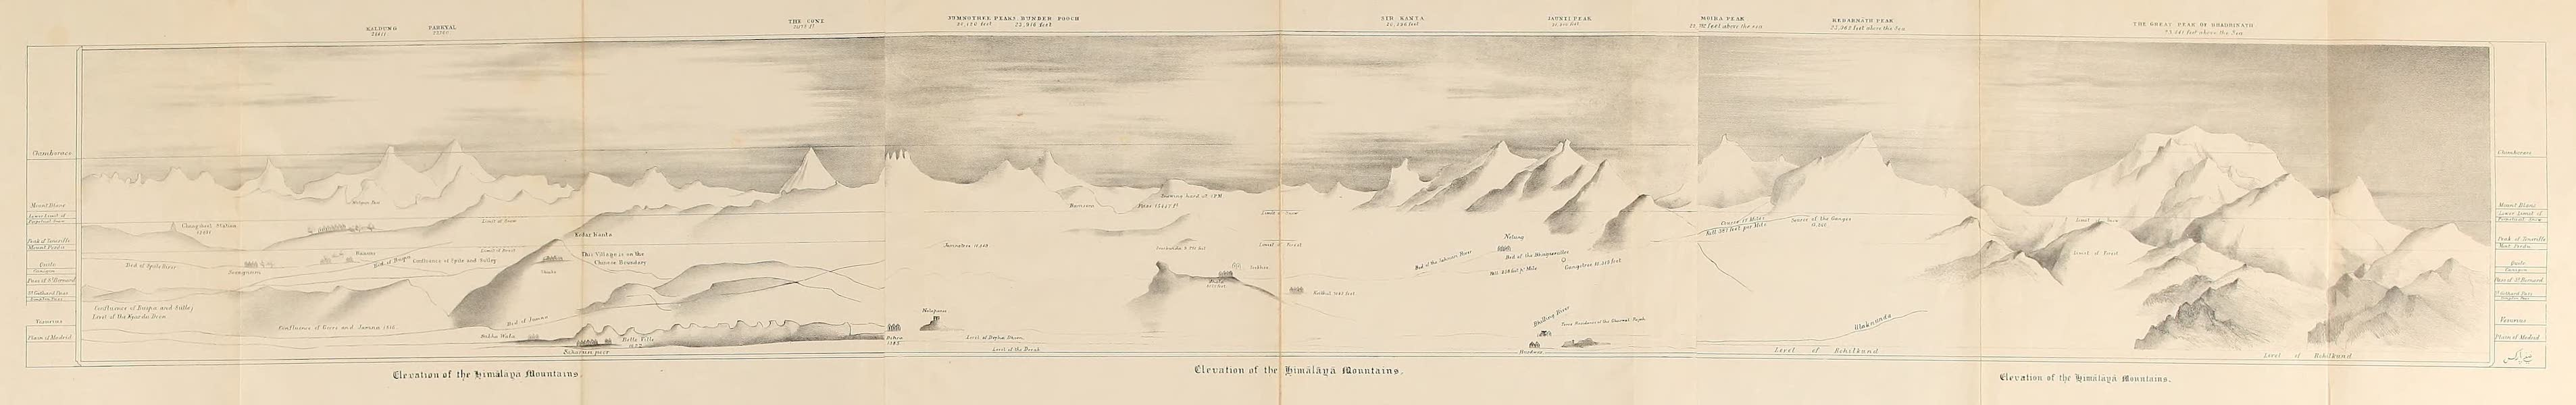 Wanderings of a Pilgrim, in Search of the Picturesque Vol. 1 - Elevation of the Himalaya Mountains (1850)